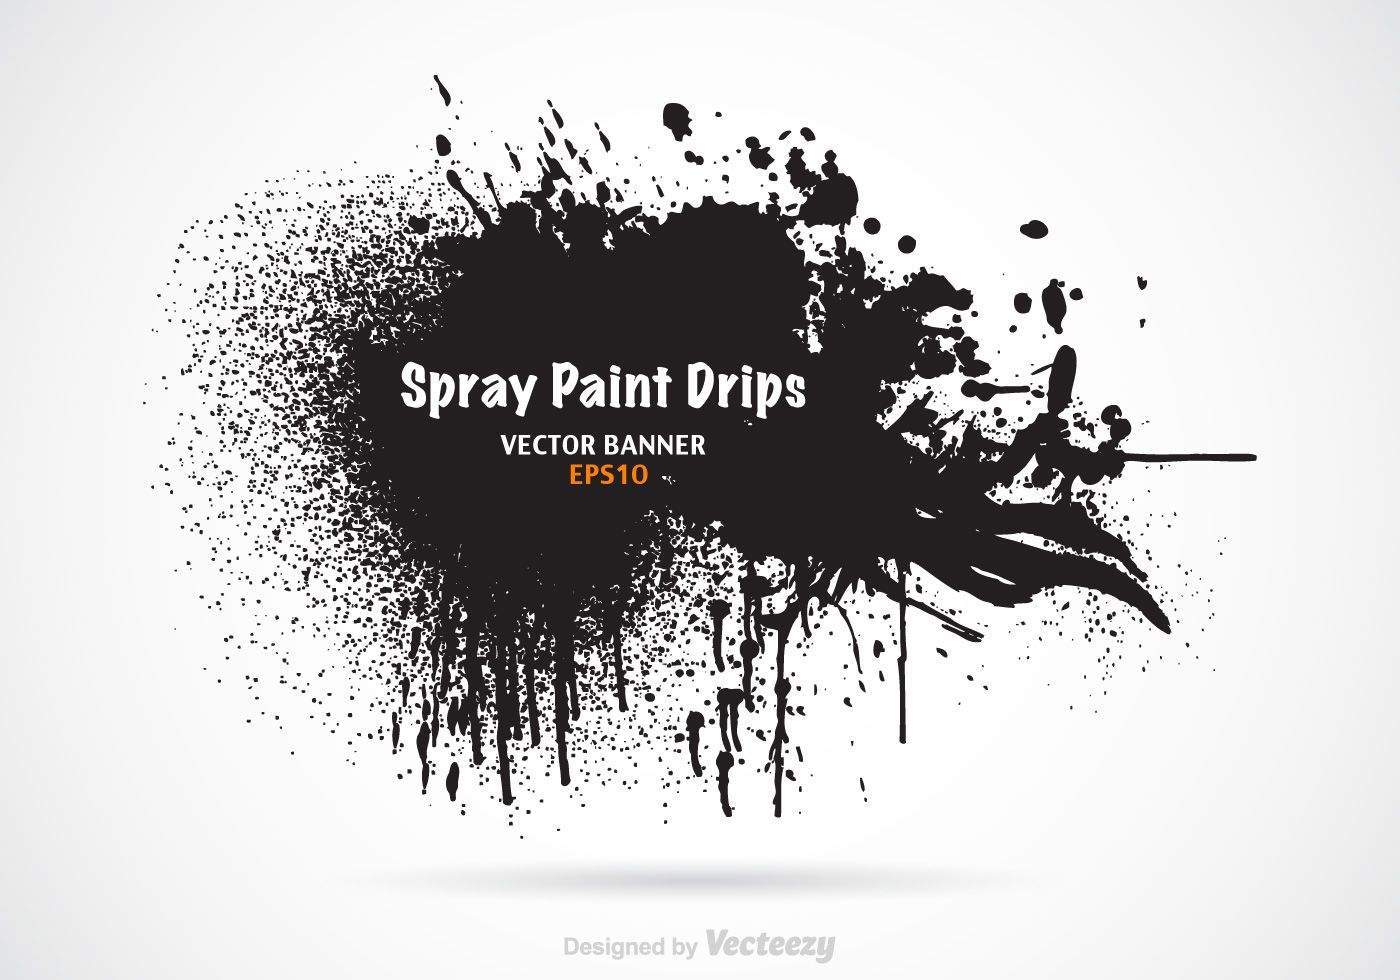 1400x980 Free Grunge Spray Paint Drips And Splashes Vector Banner. With